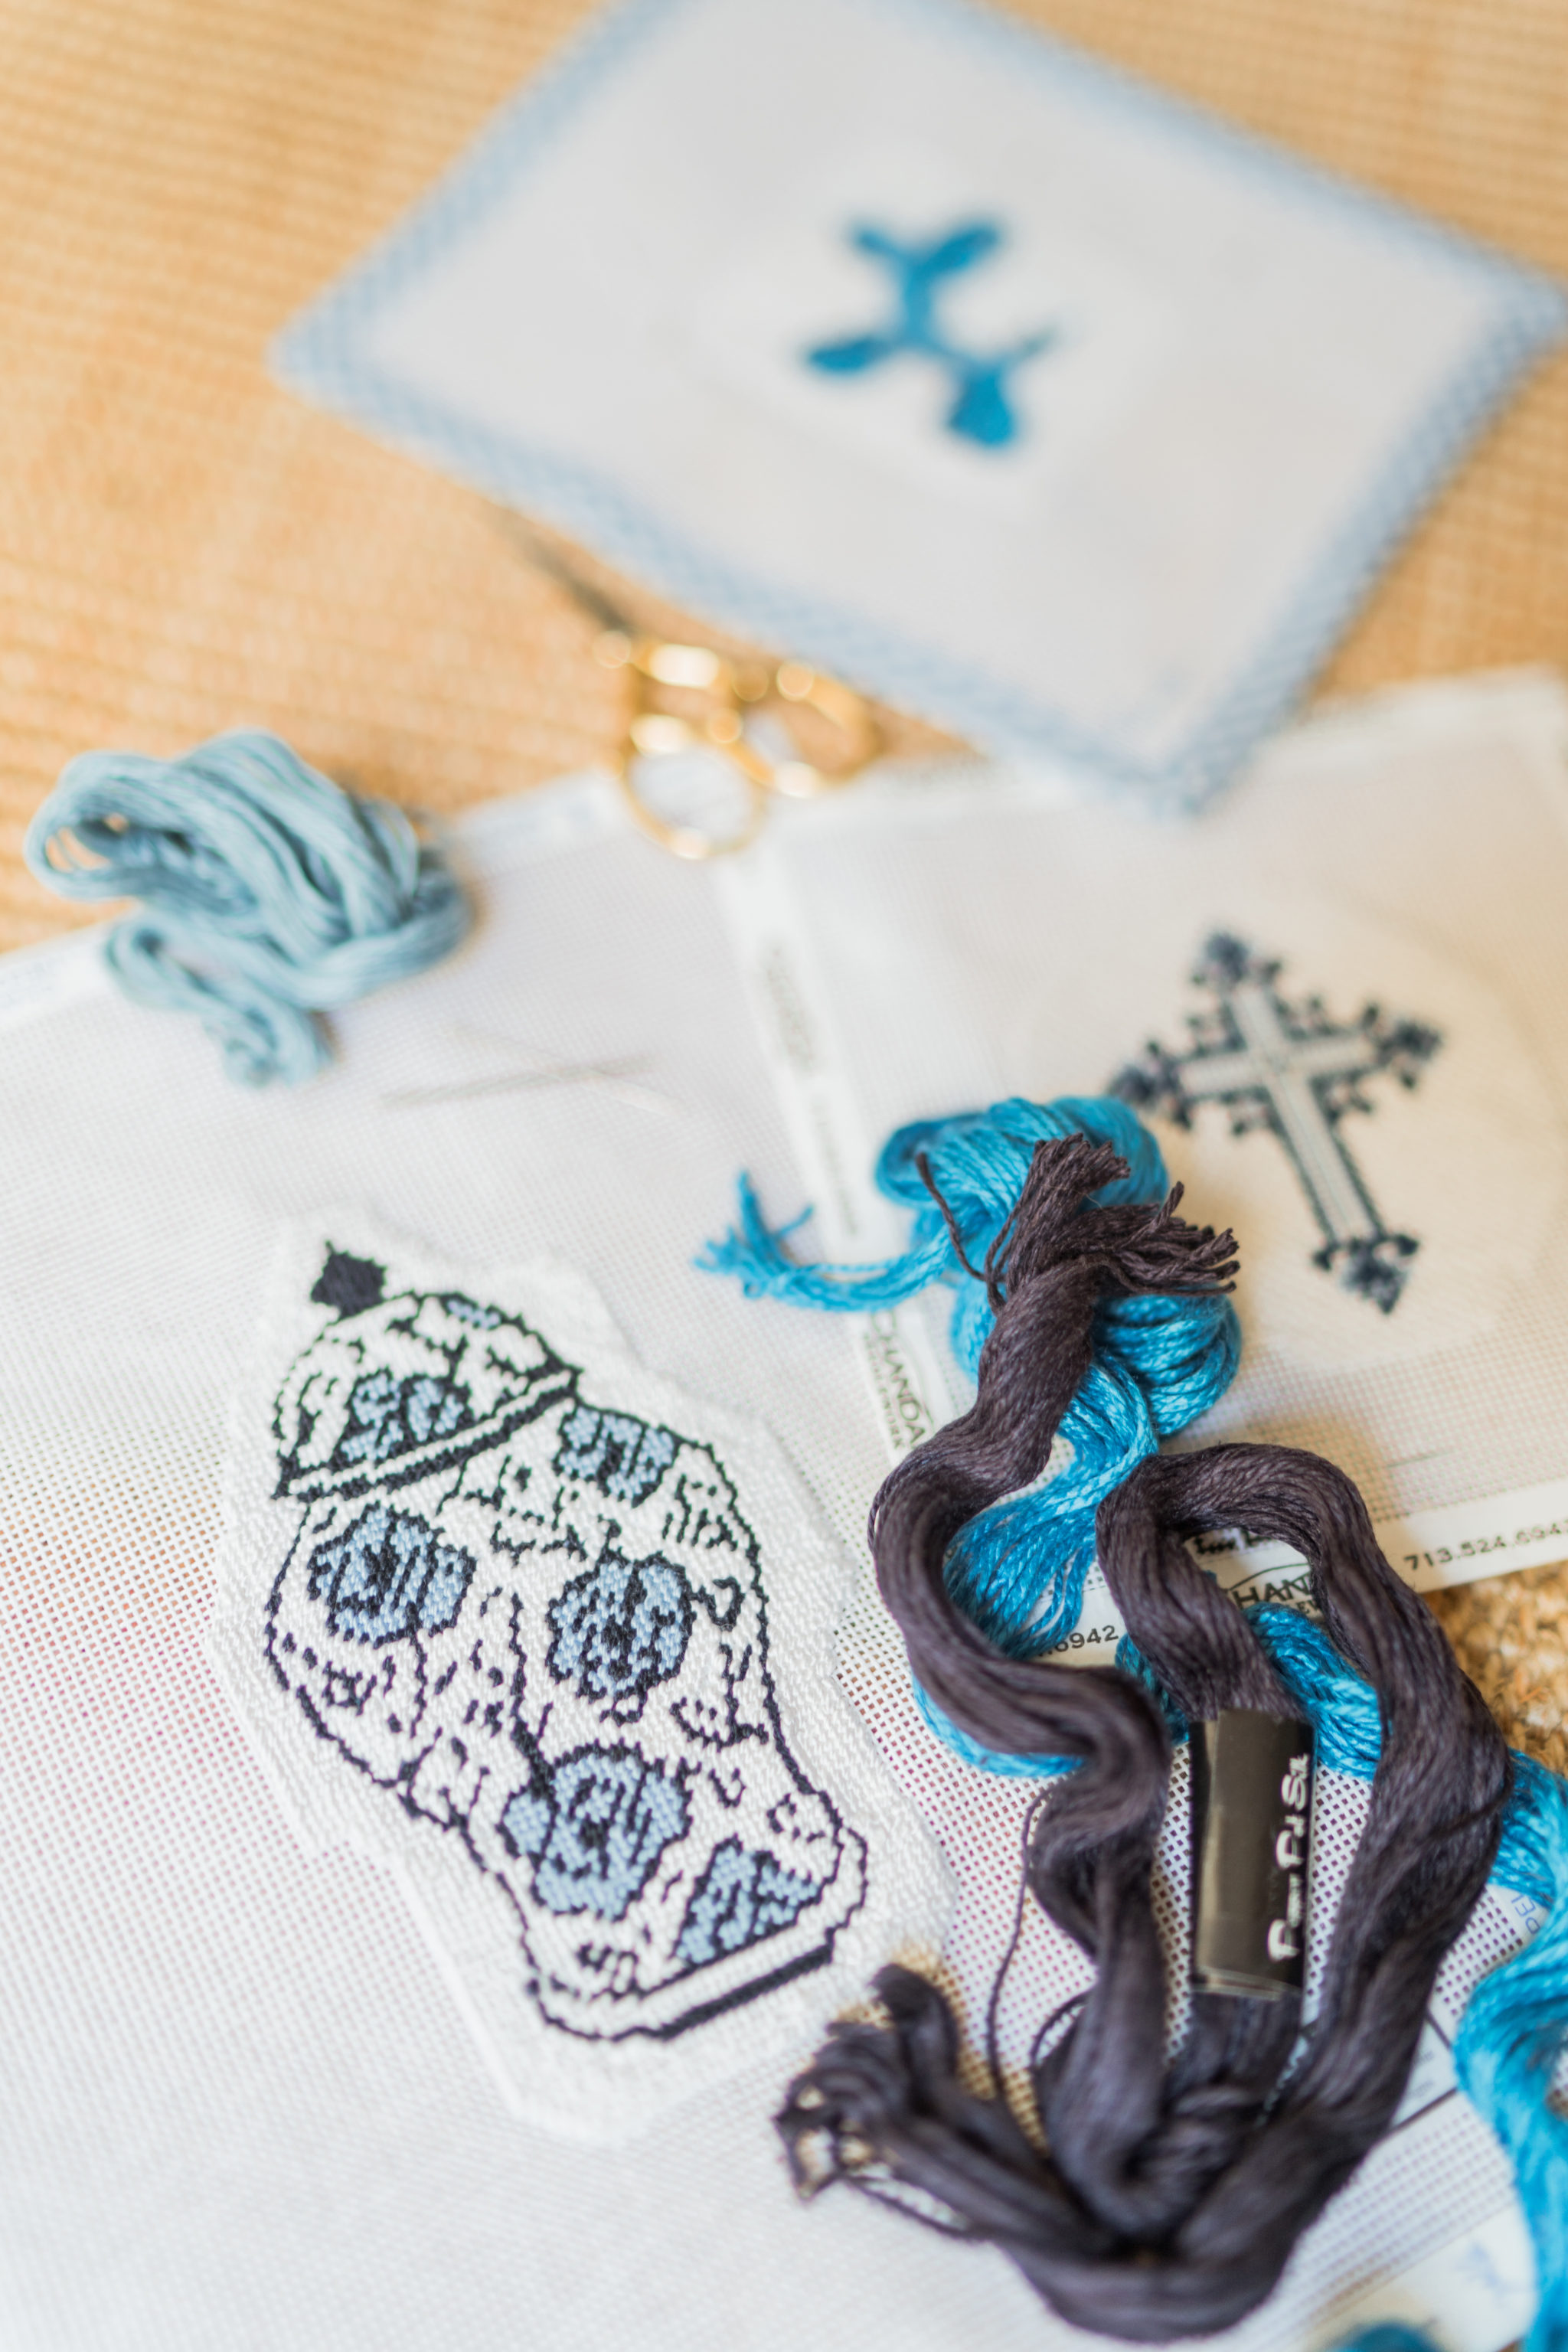 Beginners guide to needlepoint and where to start